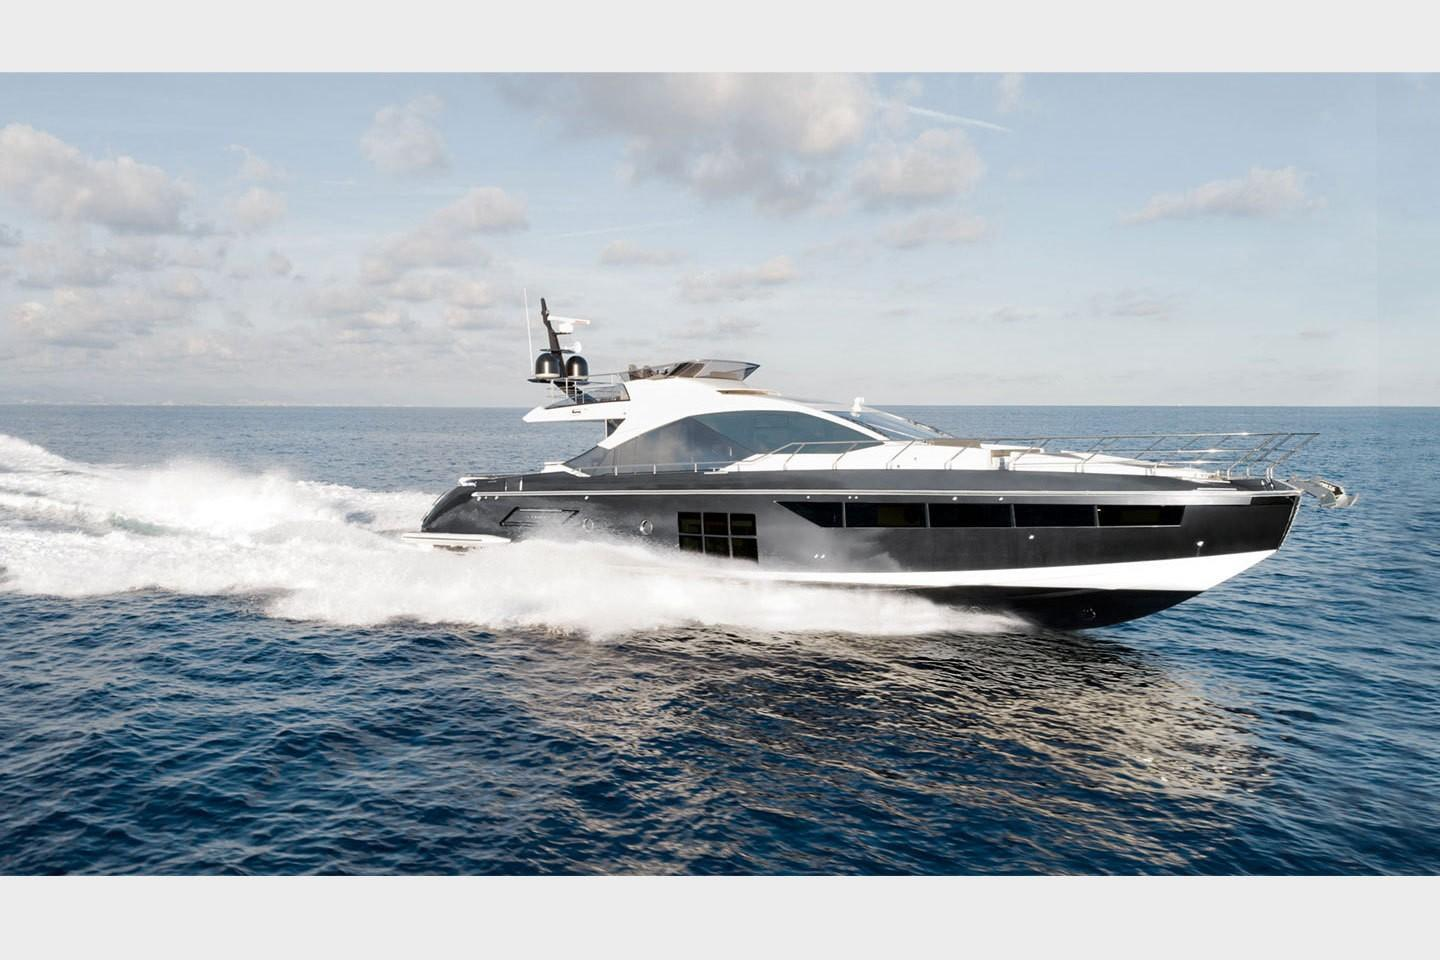 Thumbnail 1 for 2019 Azimut S7